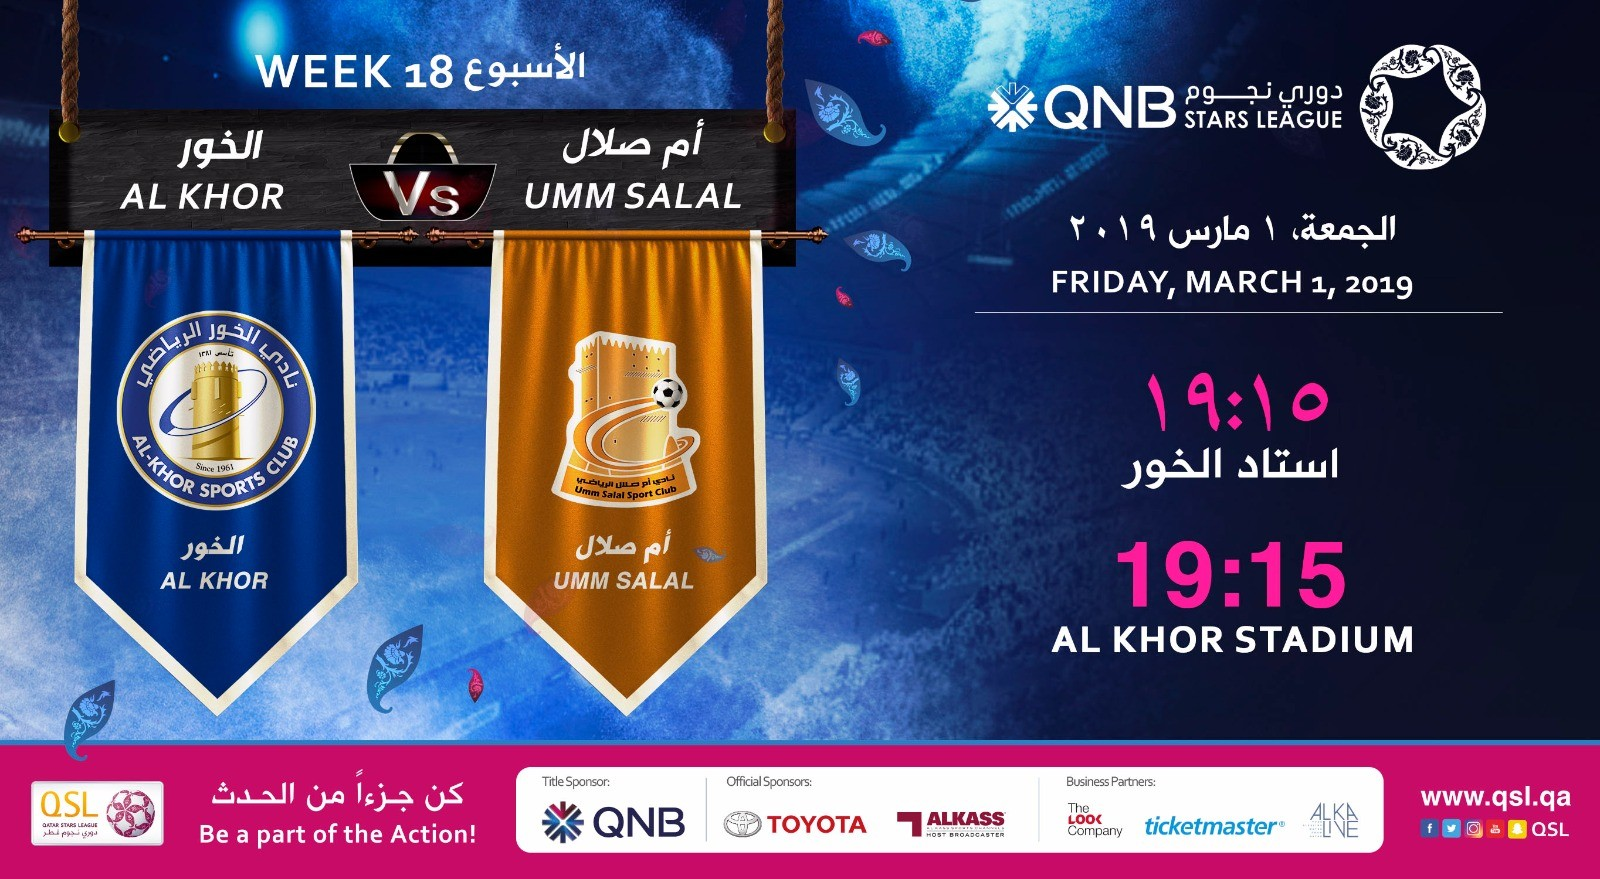 QNB Stars League Week 18 — Al Khor vs Umm Salal